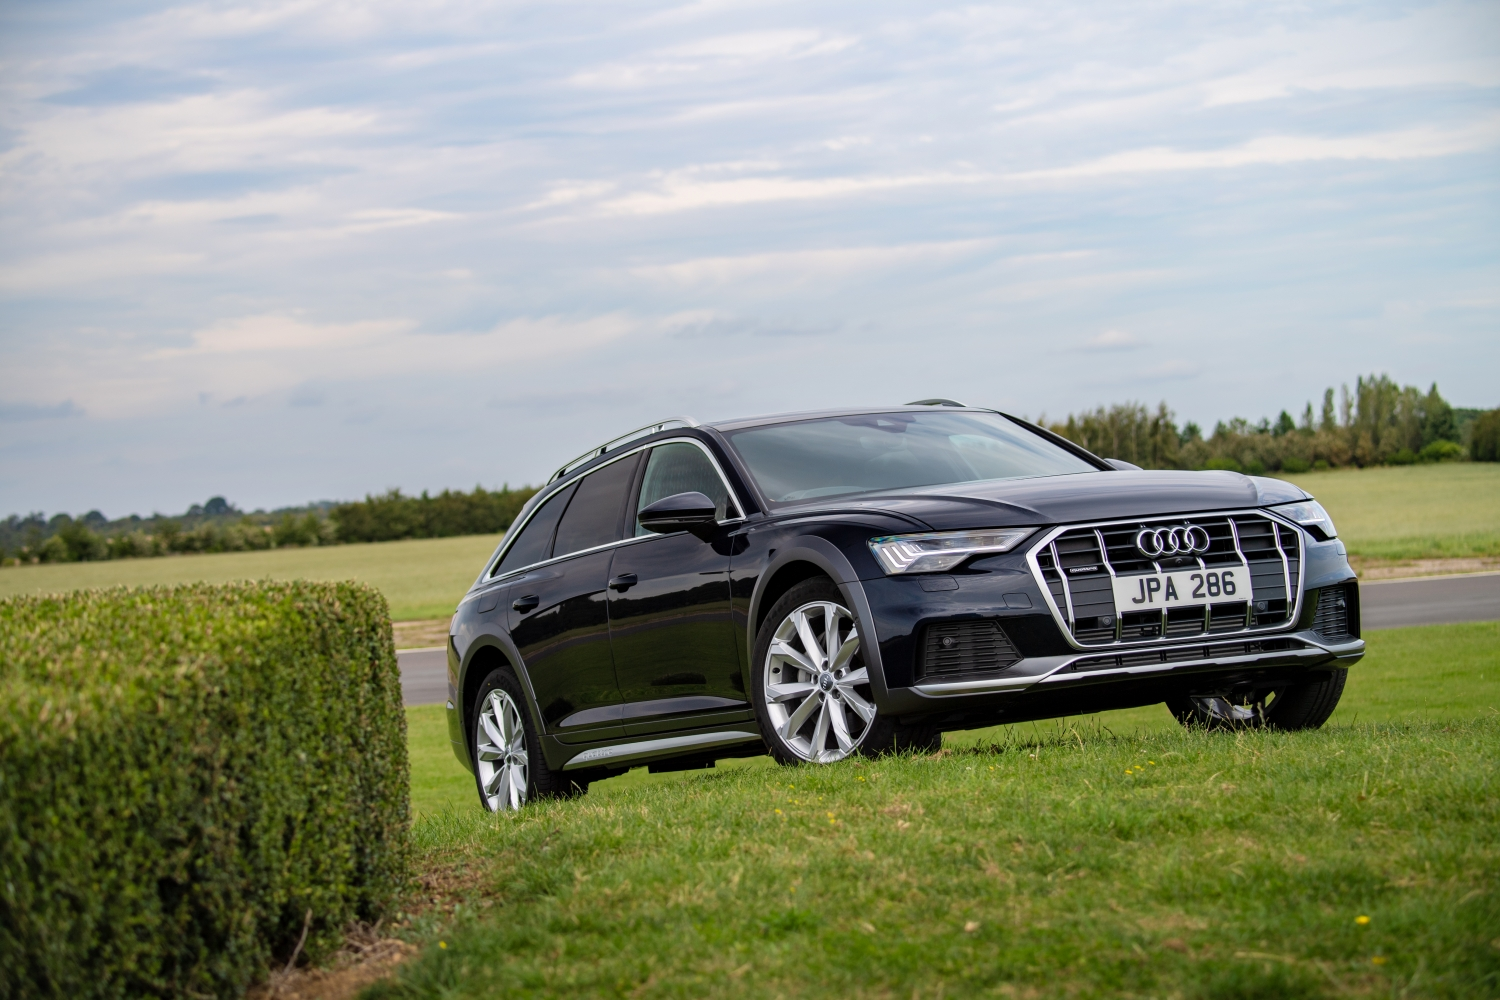 Best estate cars for towing - Audi A6 Allroad Quattro